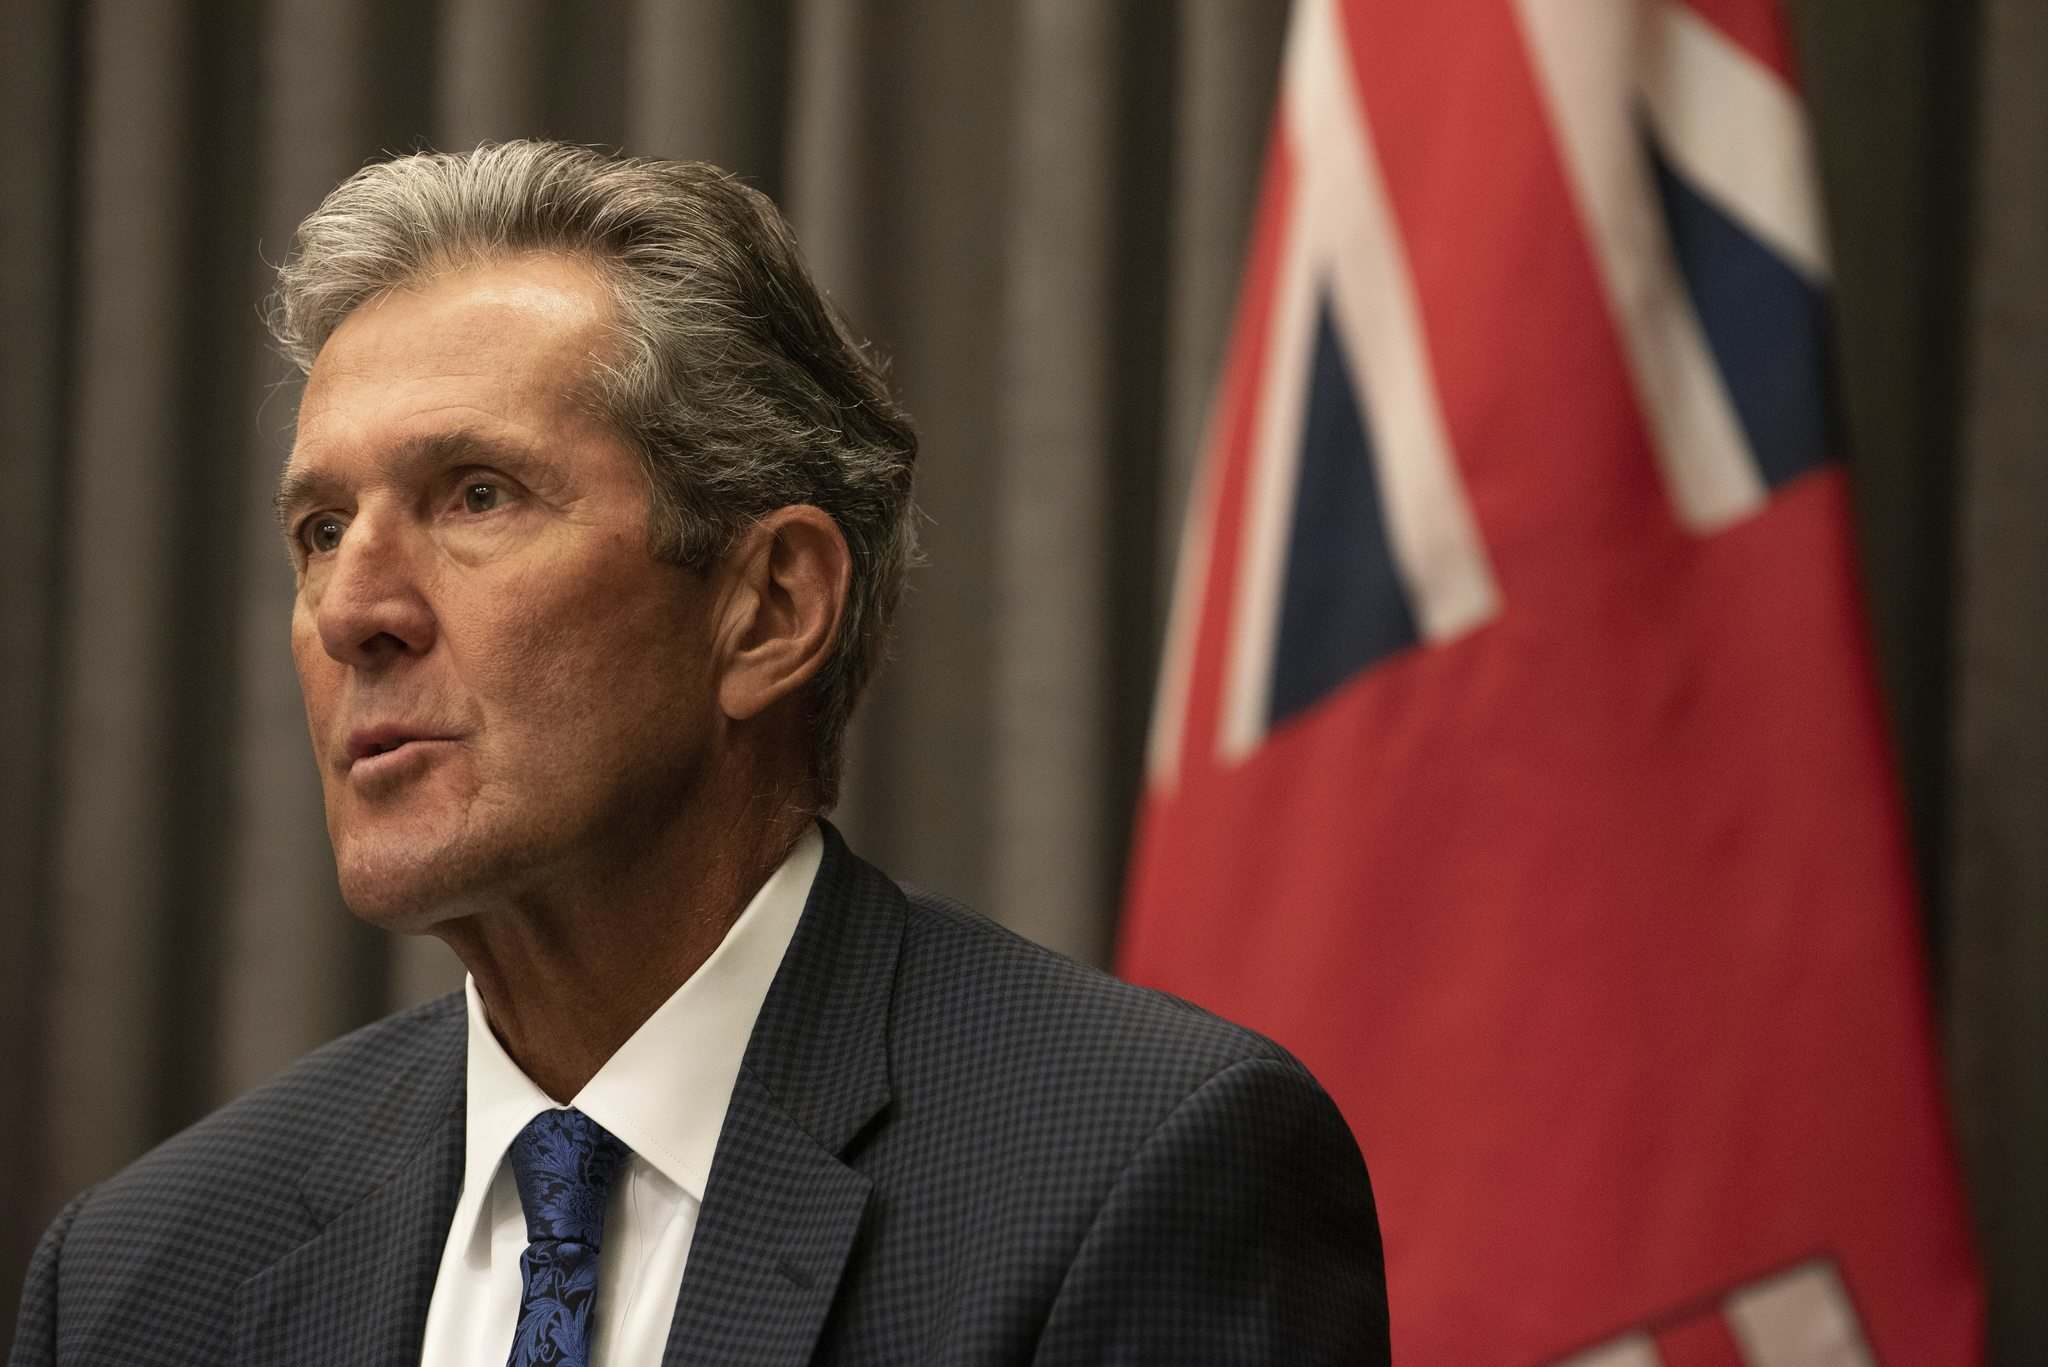 No matter how incompetent or offensive, Premier Brian Pallister always finds something or someone else to blame and then readies himself to make the same mistakes over again.